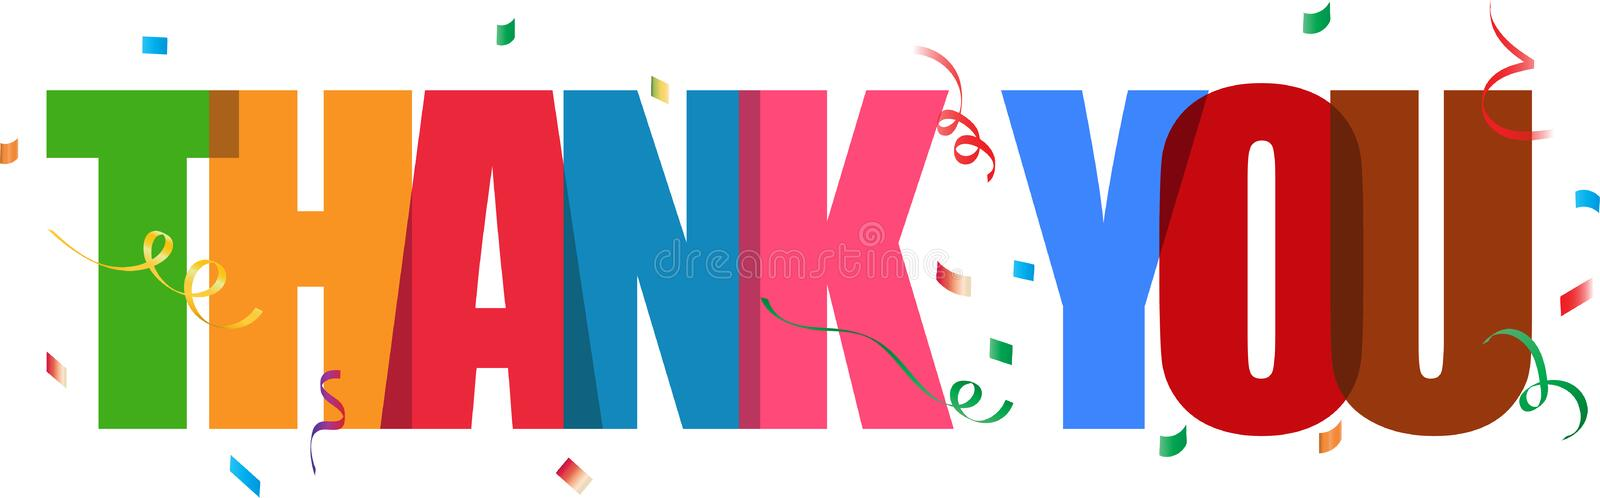 Thank you lettering confetti sign royalty free illustration